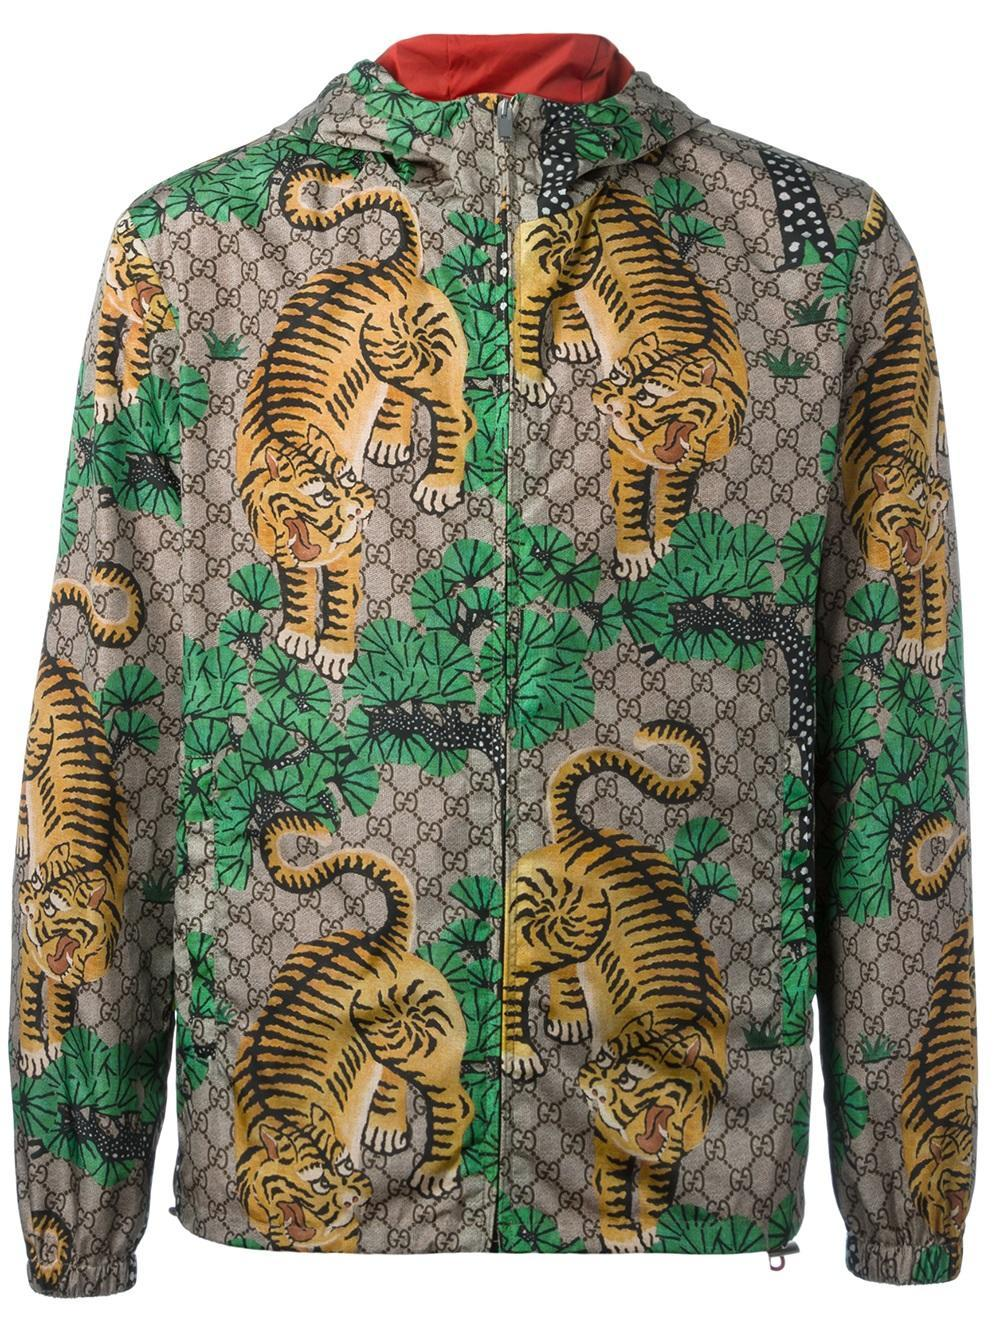 5d9a2e260f6 Lyst - Gucci   Bengal  Print Jacket in Green for Men